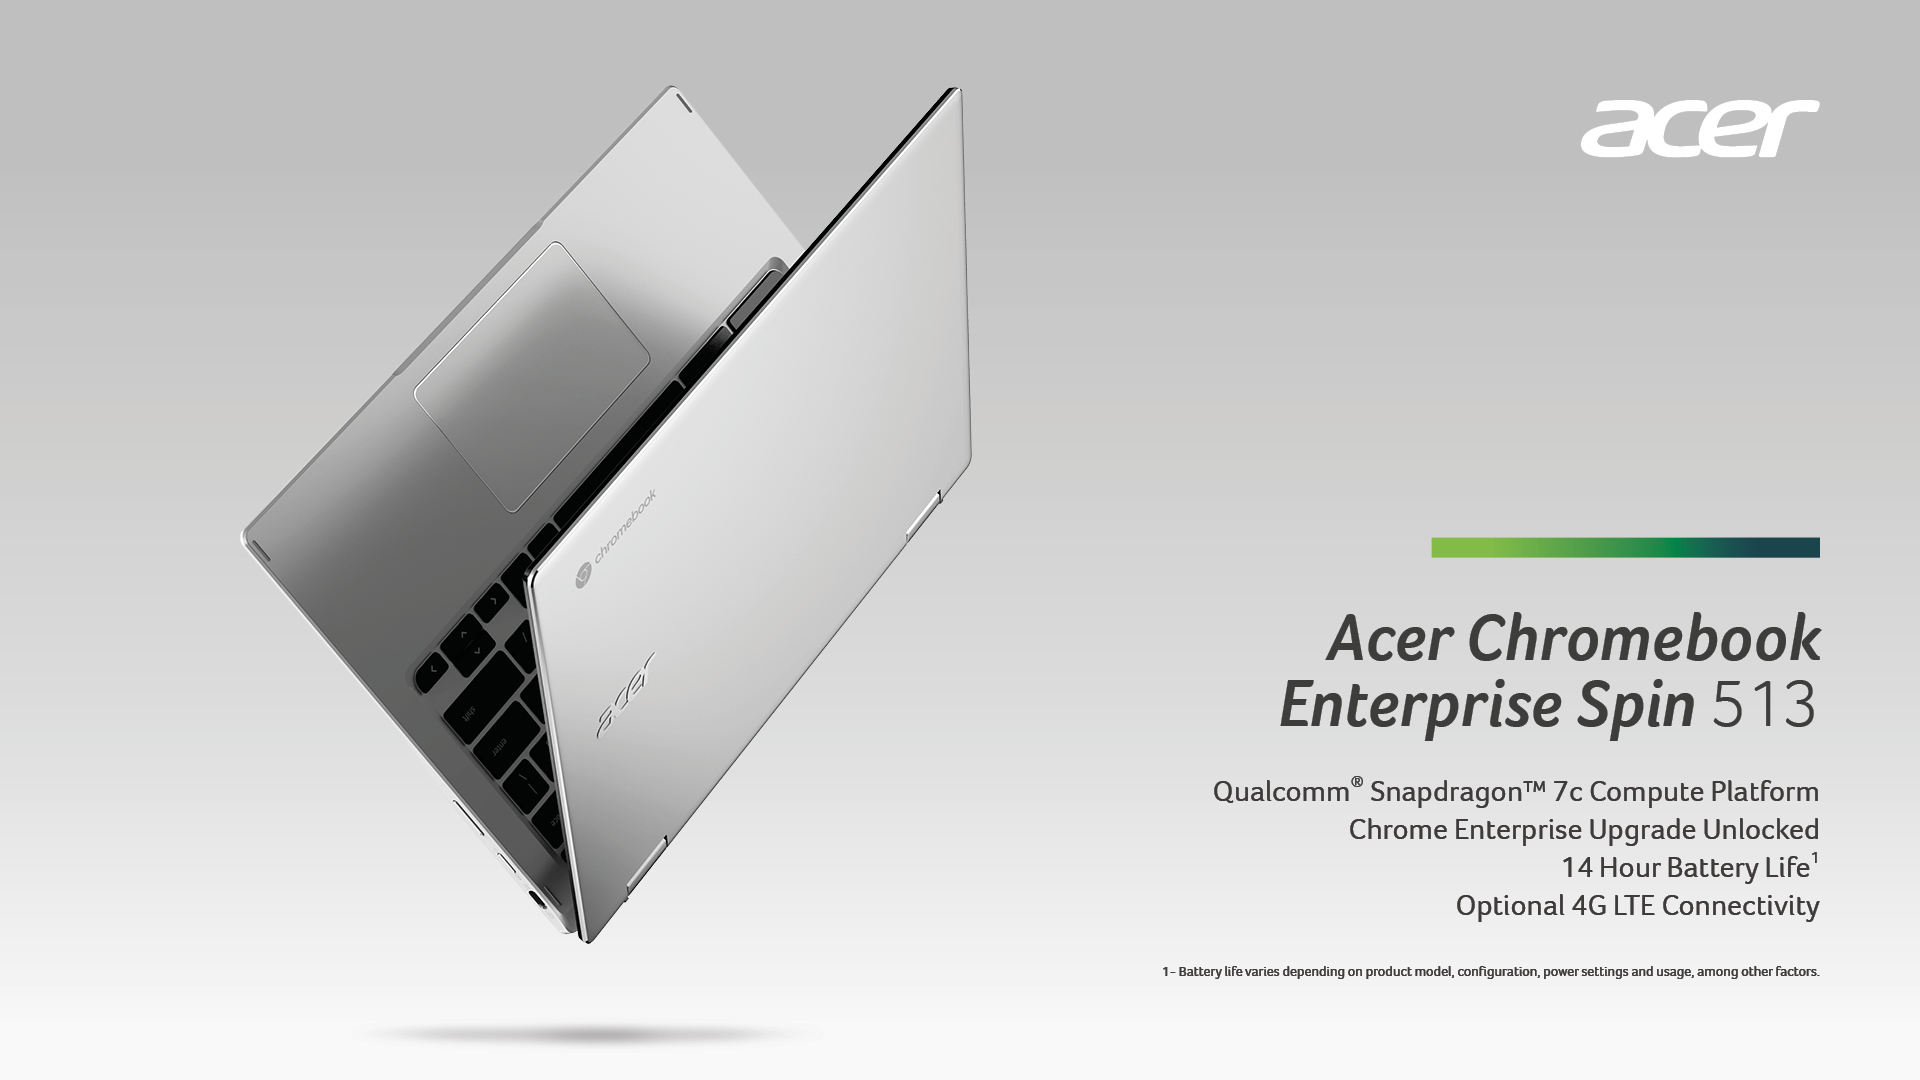 Acer's first Chromebook with the Qualcomm Snapdragon 7c compute platform is ultraportable, 4G LTE equipped